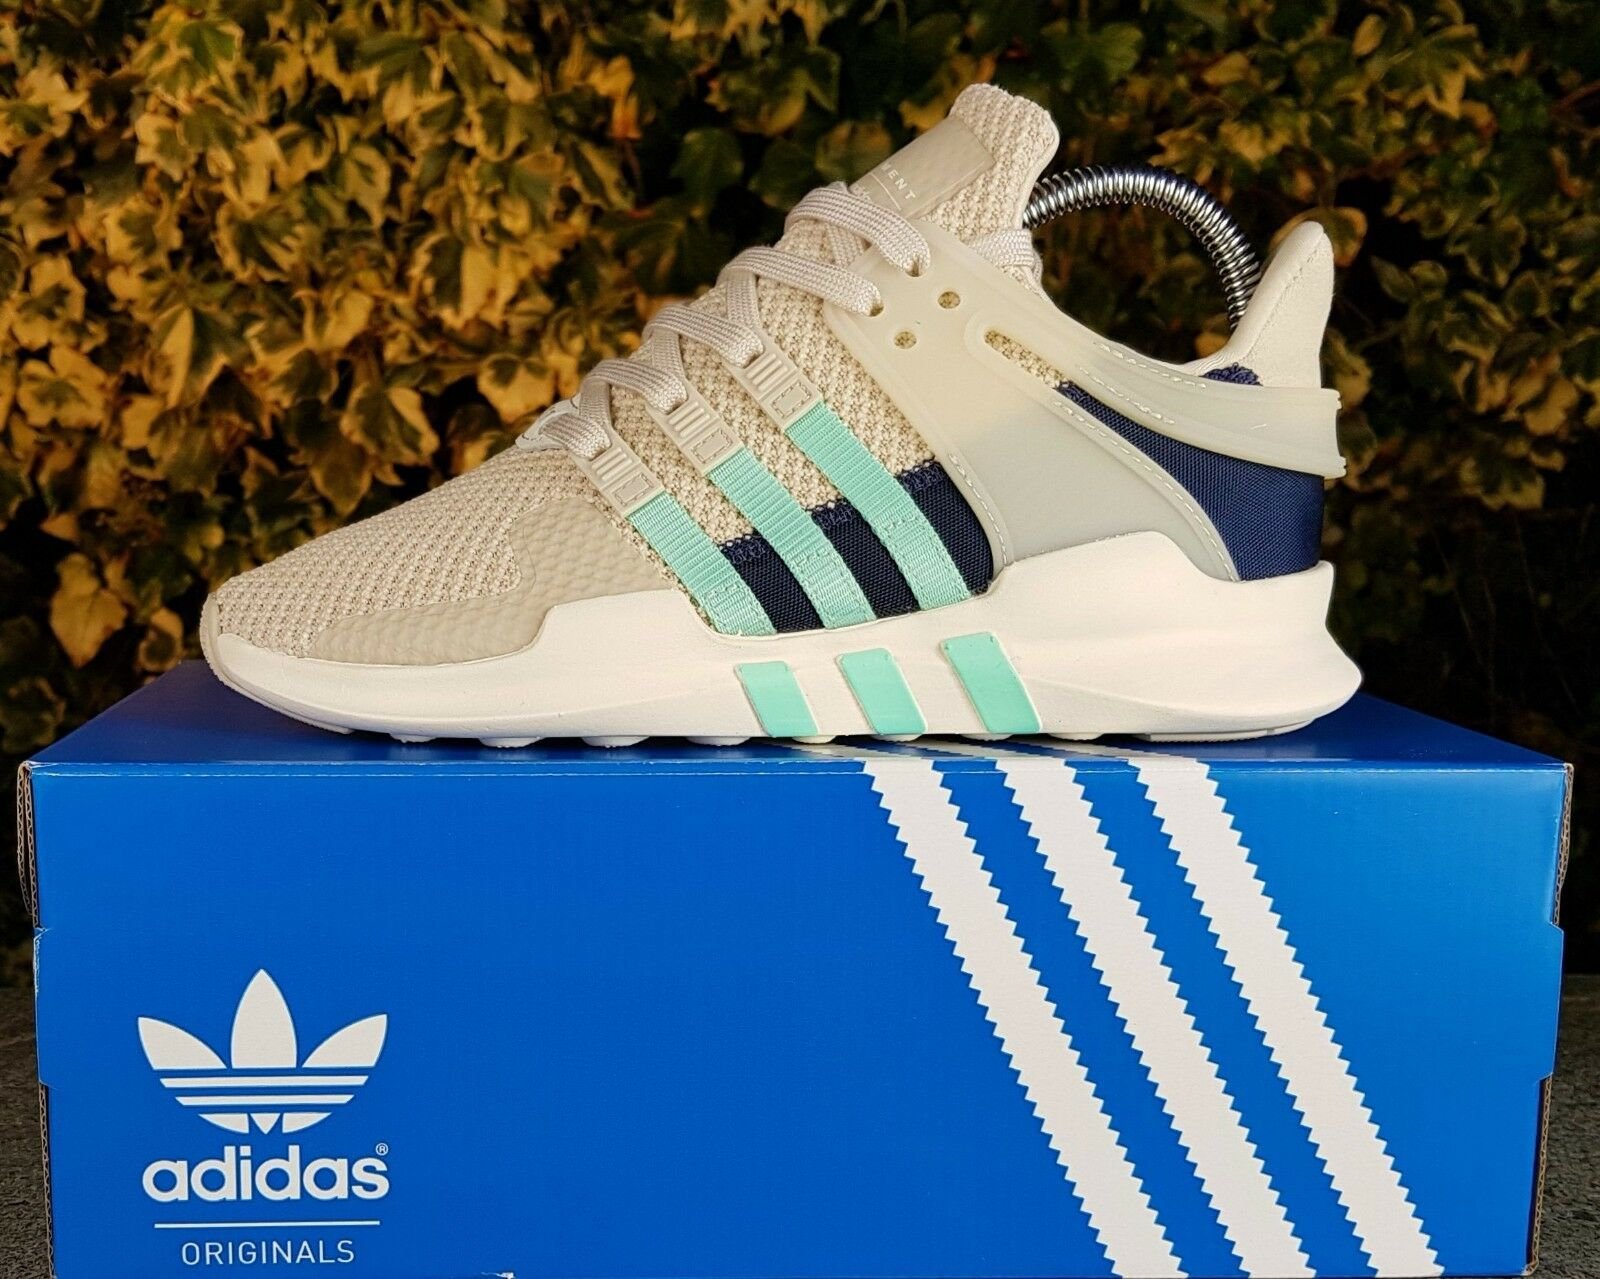 BNWB 91/17 Adidas Originals Equipment ® EQT Support Adv 91/17 BNWB Trainers UK Größe 5 aeafd0